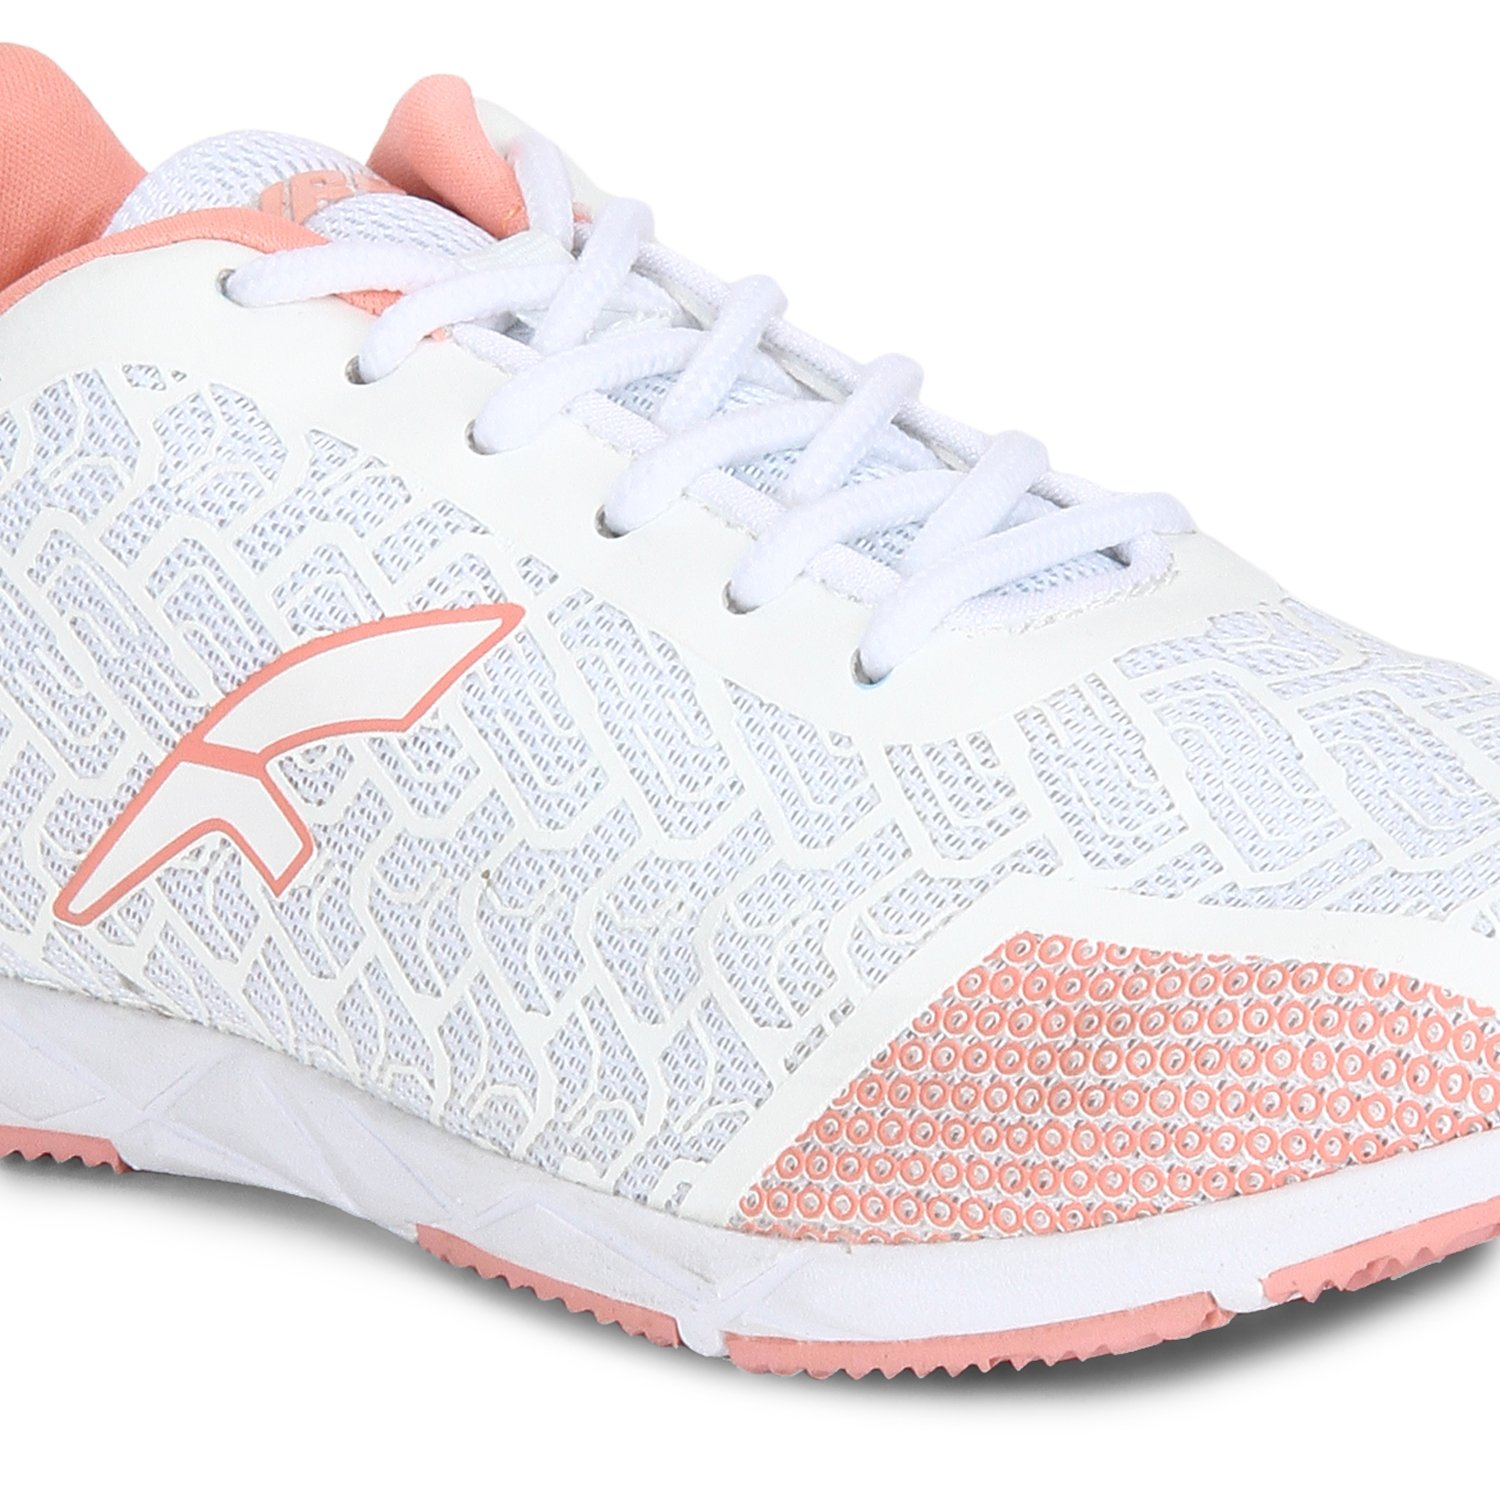 Red Chief Men's R1000 Running Shoes